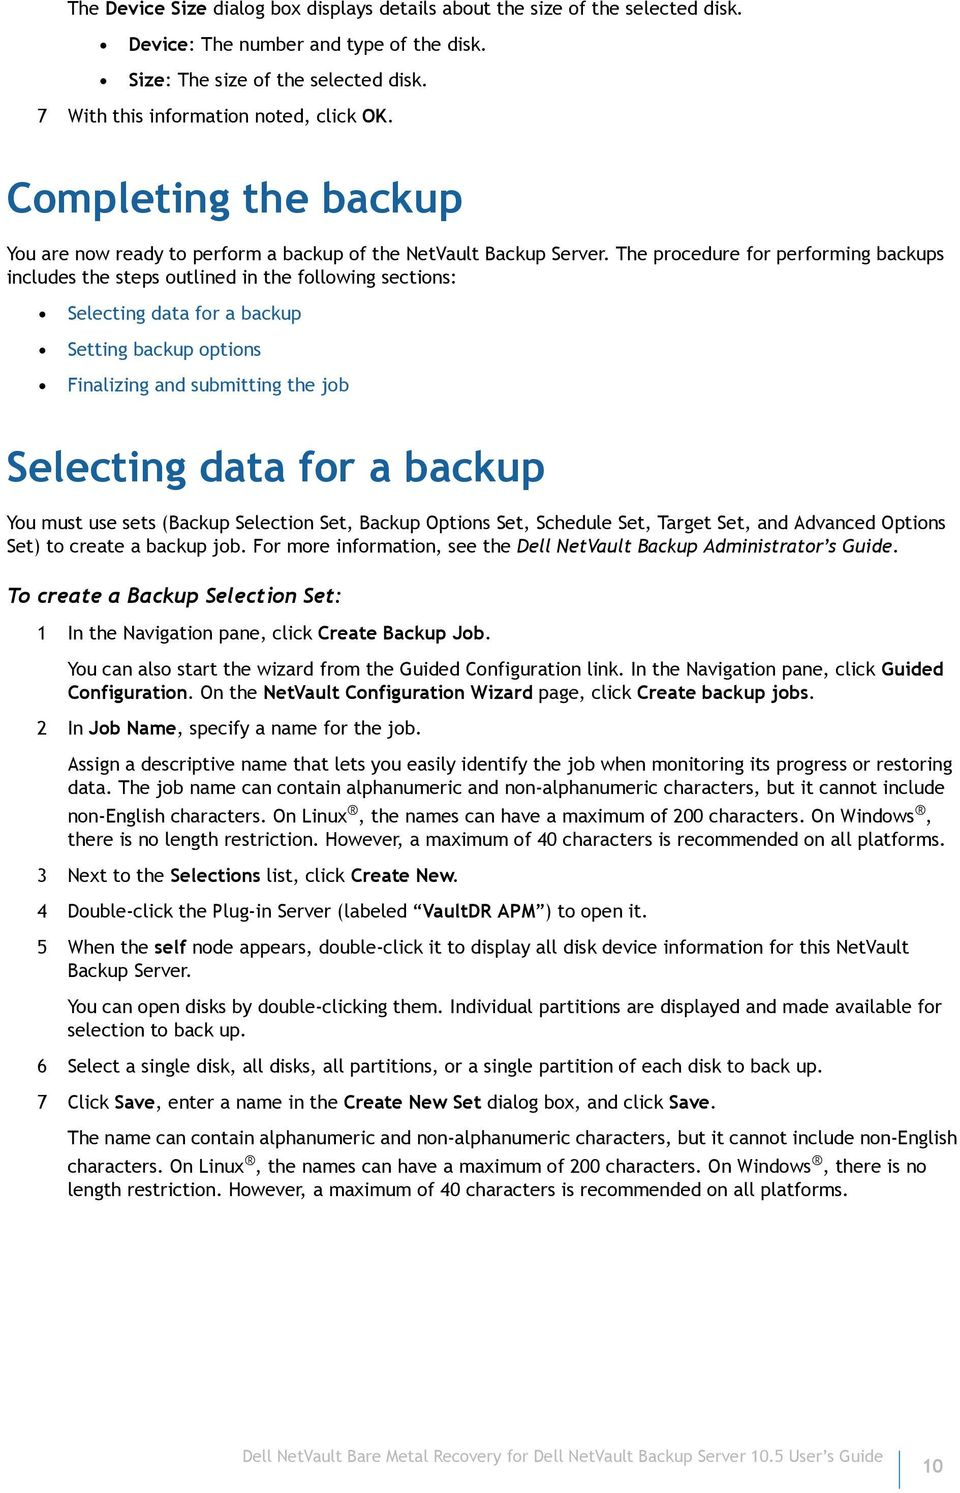 The procedure for performing backups includes the steps outlined in the following sections: Selecting data for a backup Setting backup options Finalizing and submitting the job Selecting data for a